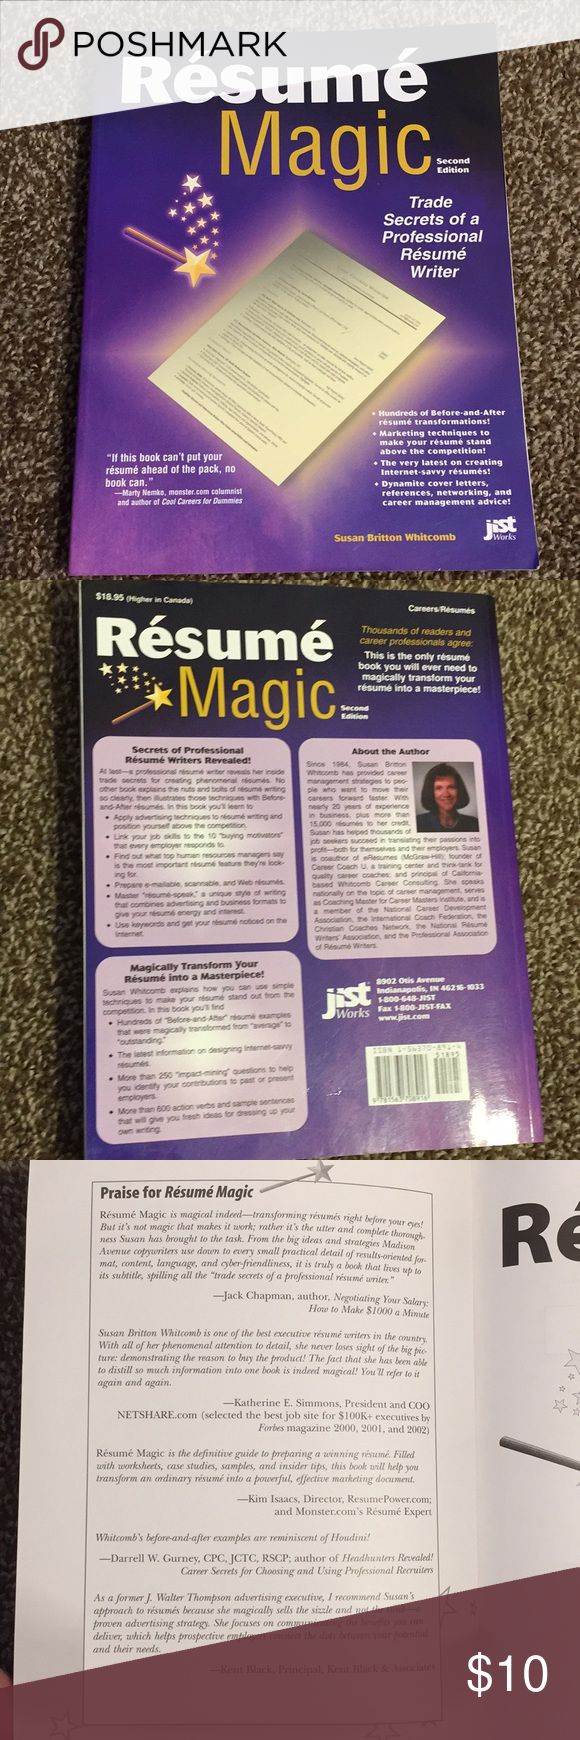 Resume Magic 2nd Edition Like New Resume Magic- Trade Secrets of a Professional Resume Writer If you're changing jobs voluntarily or if you've been laid off and you're looking for your next job, this book can help.  Resume Magic has 10 chapters plus worksheets. It covers not only structure of a resume, how to write an effective cover letter, how to prepare for an interview, but also how to make sure you've got your grammar on point.  This book can help you land the job you want and PoshMark and help you dress for it. Other